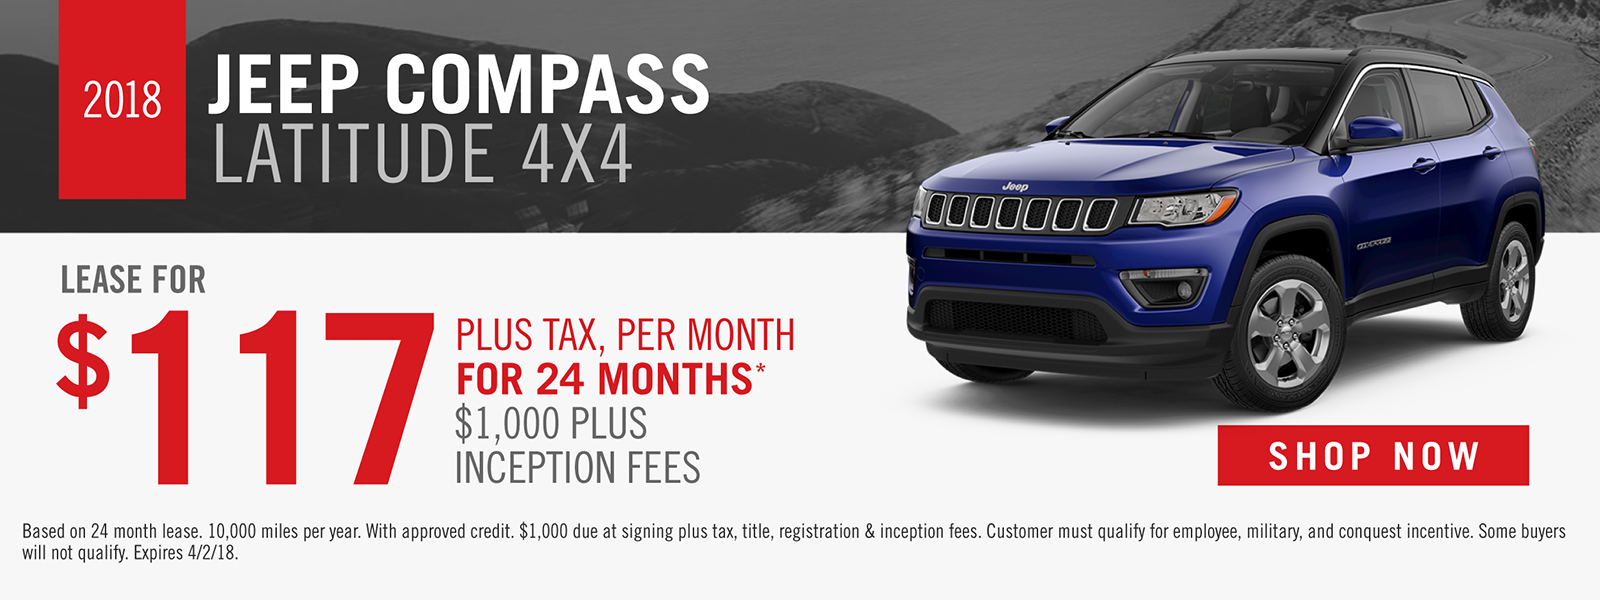 Lease Specials Southfield Chrysler Dodge Jeep Ram - Chrysler specials